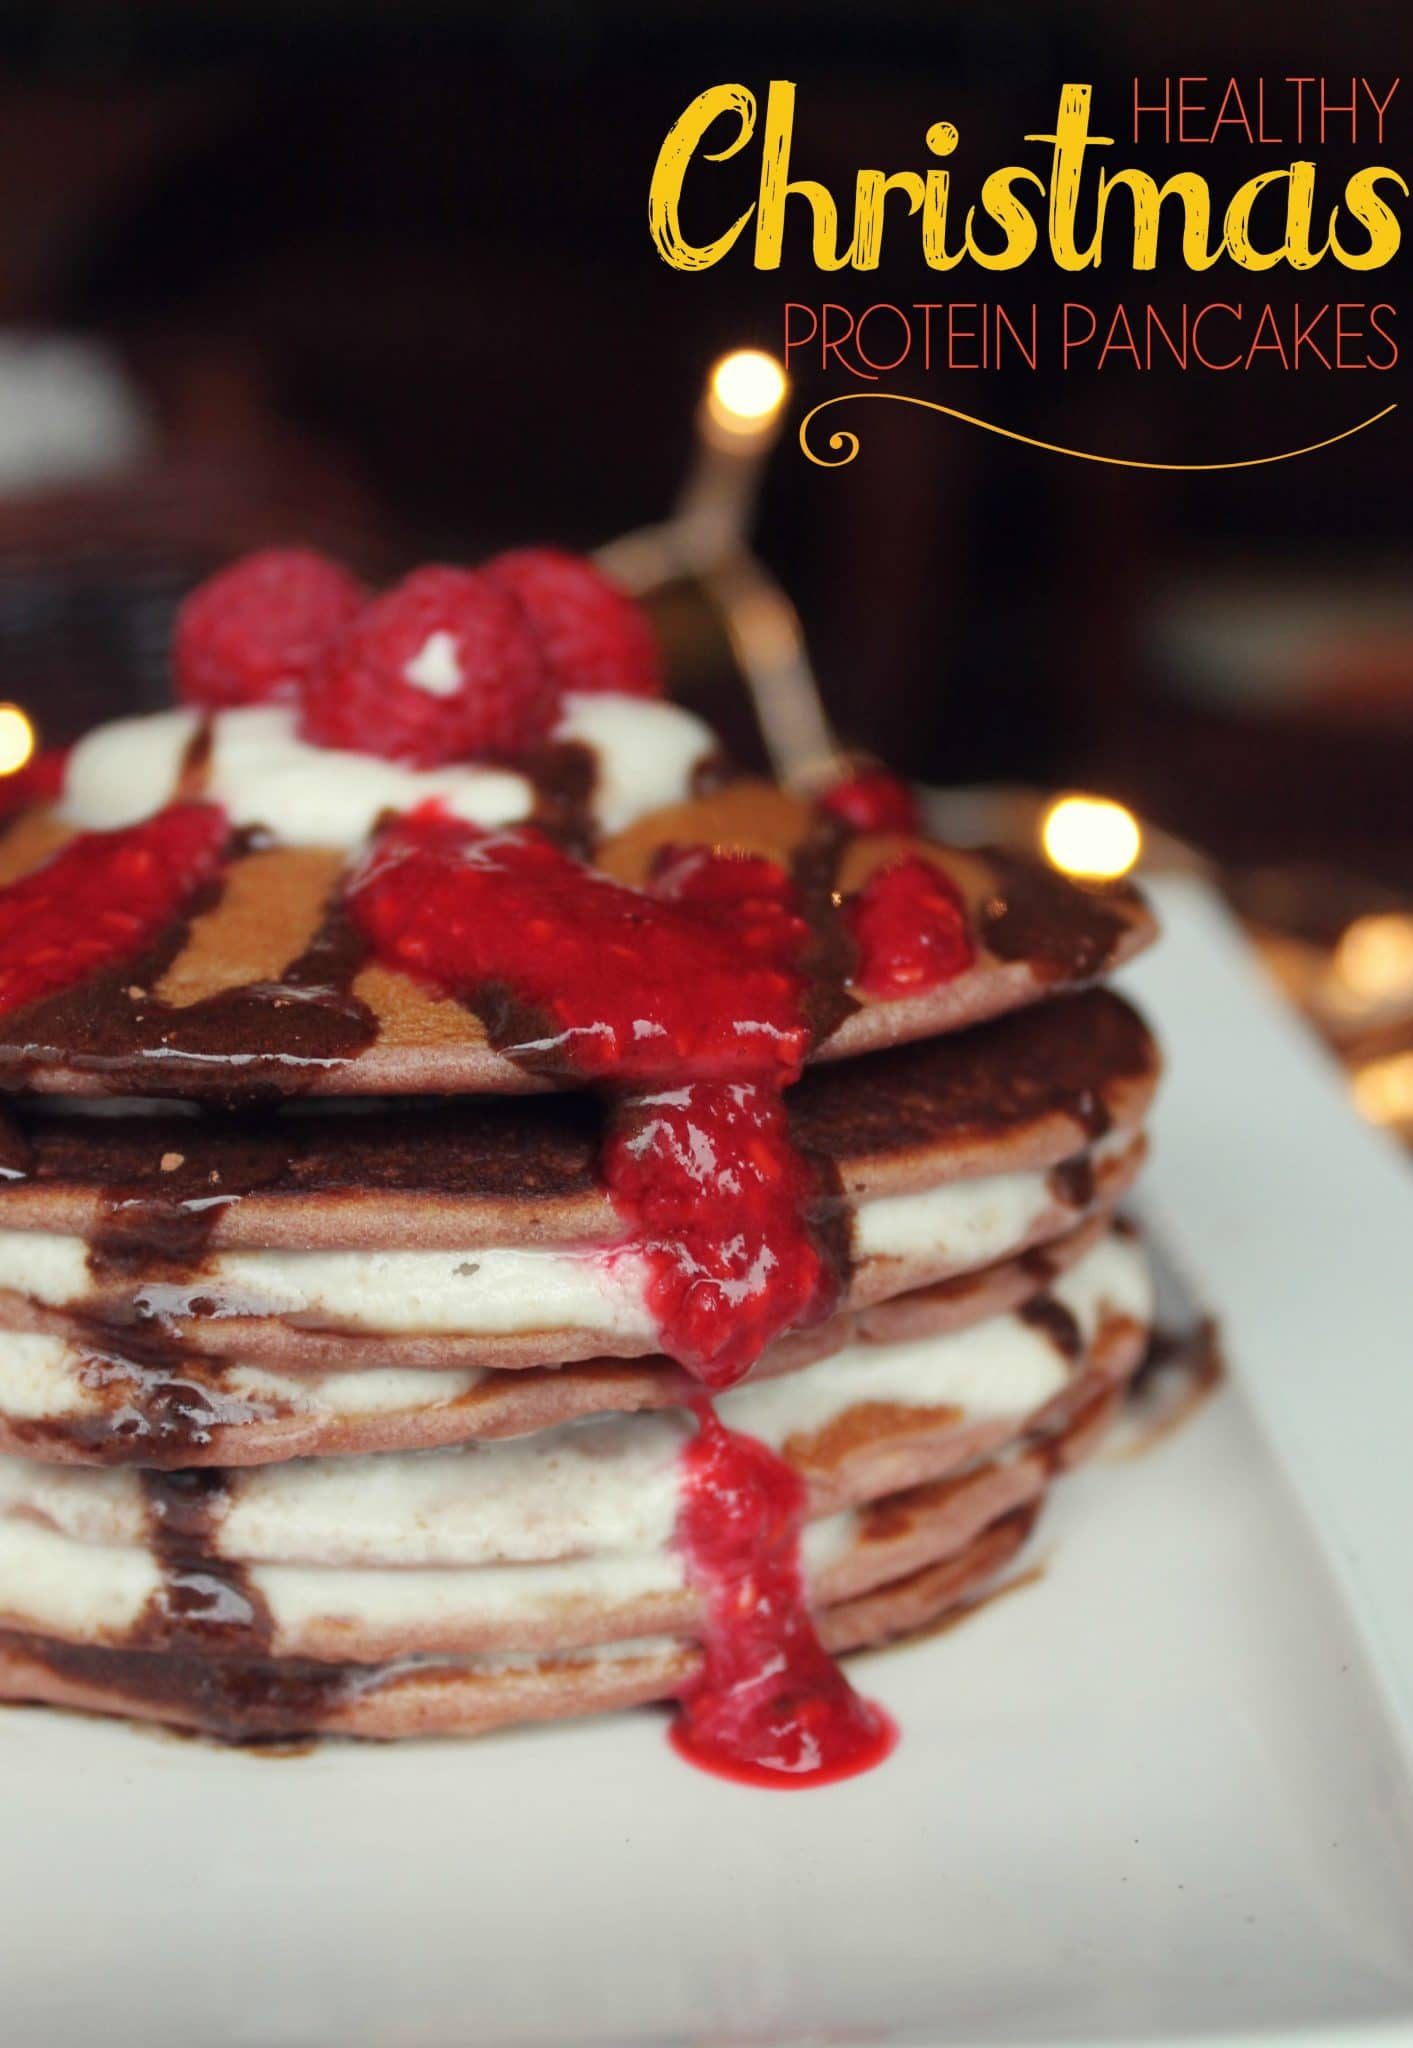 Healthy Christmas Recipes - Delicious Protein Pancakes